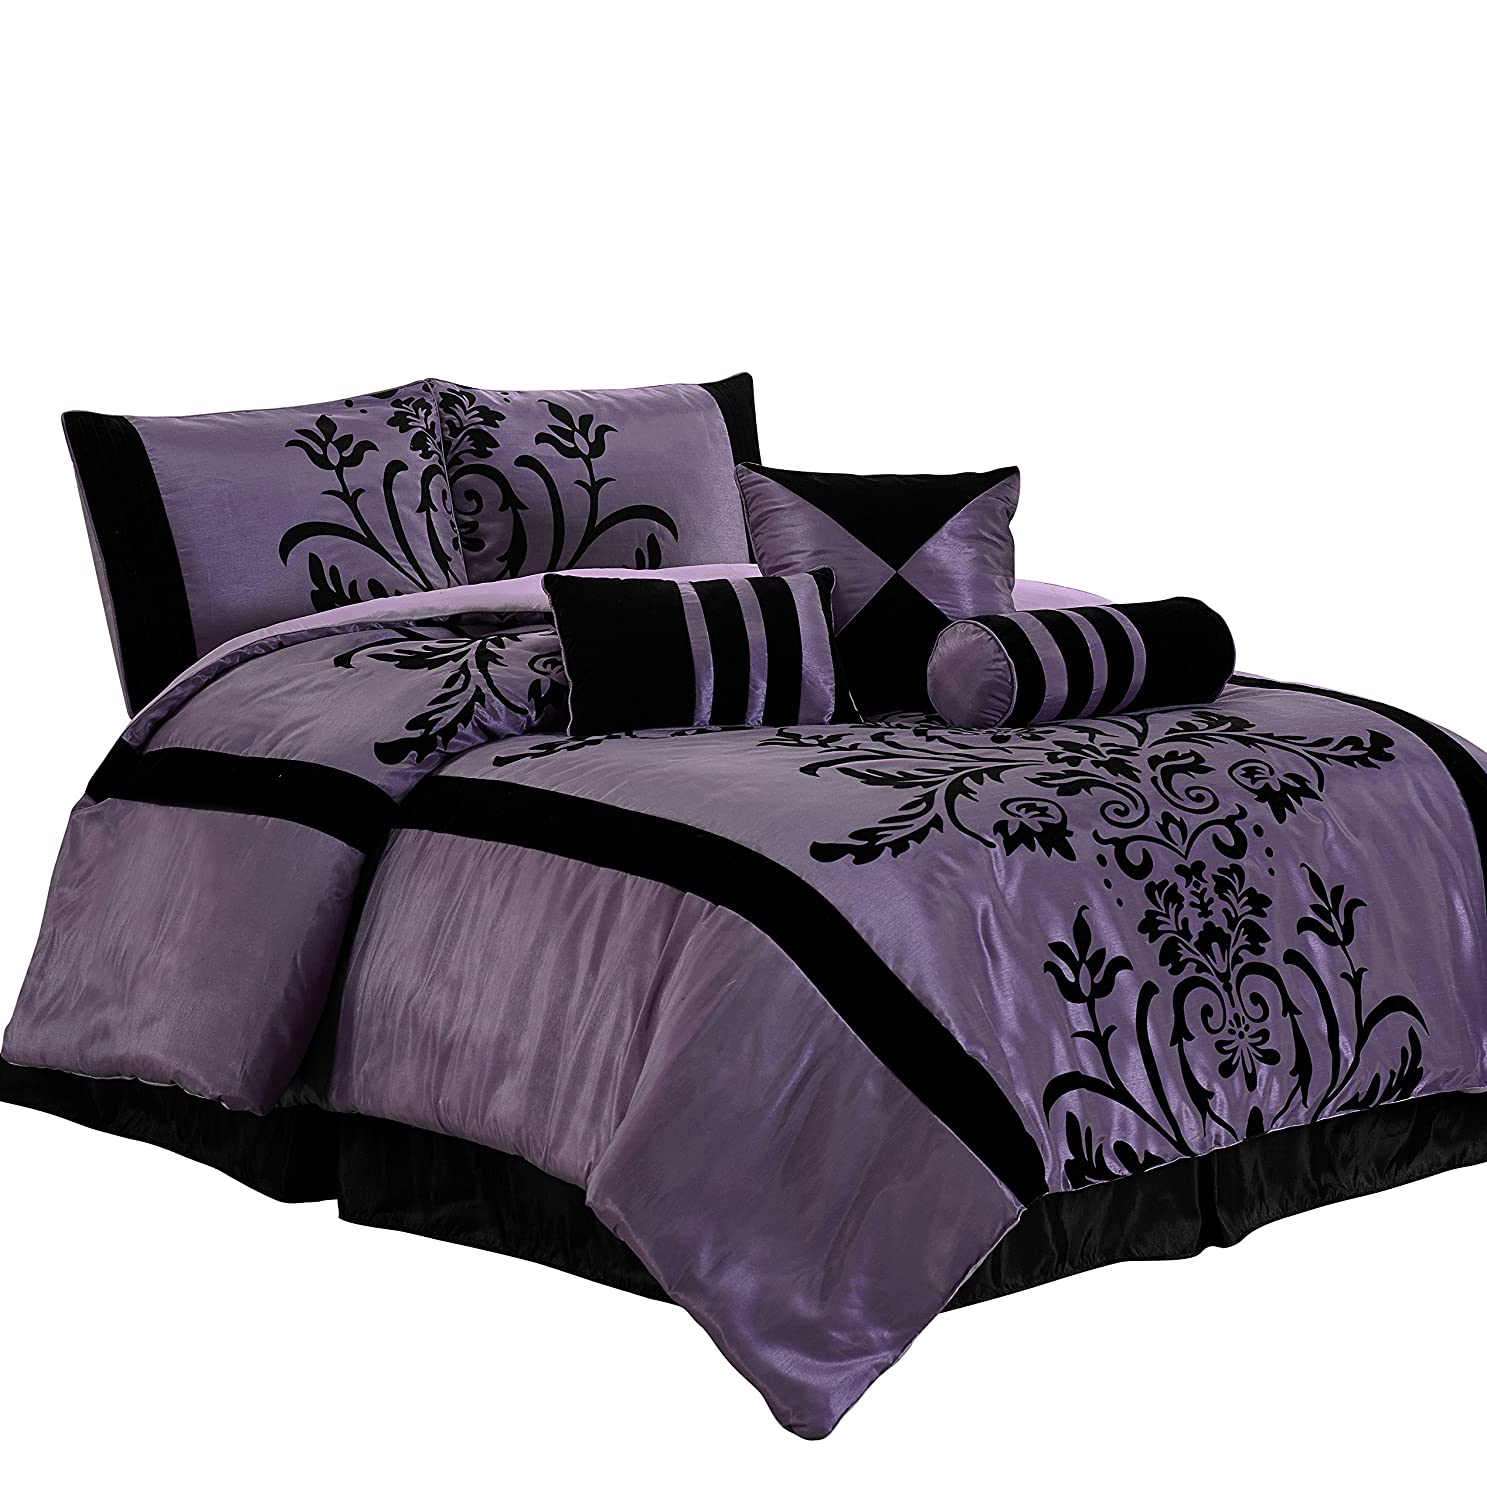 Chezmoi Collection Nobility-Com 7-Piece Black Violet Flocked Floral Faux Silk Bedding Comforter Set (King)